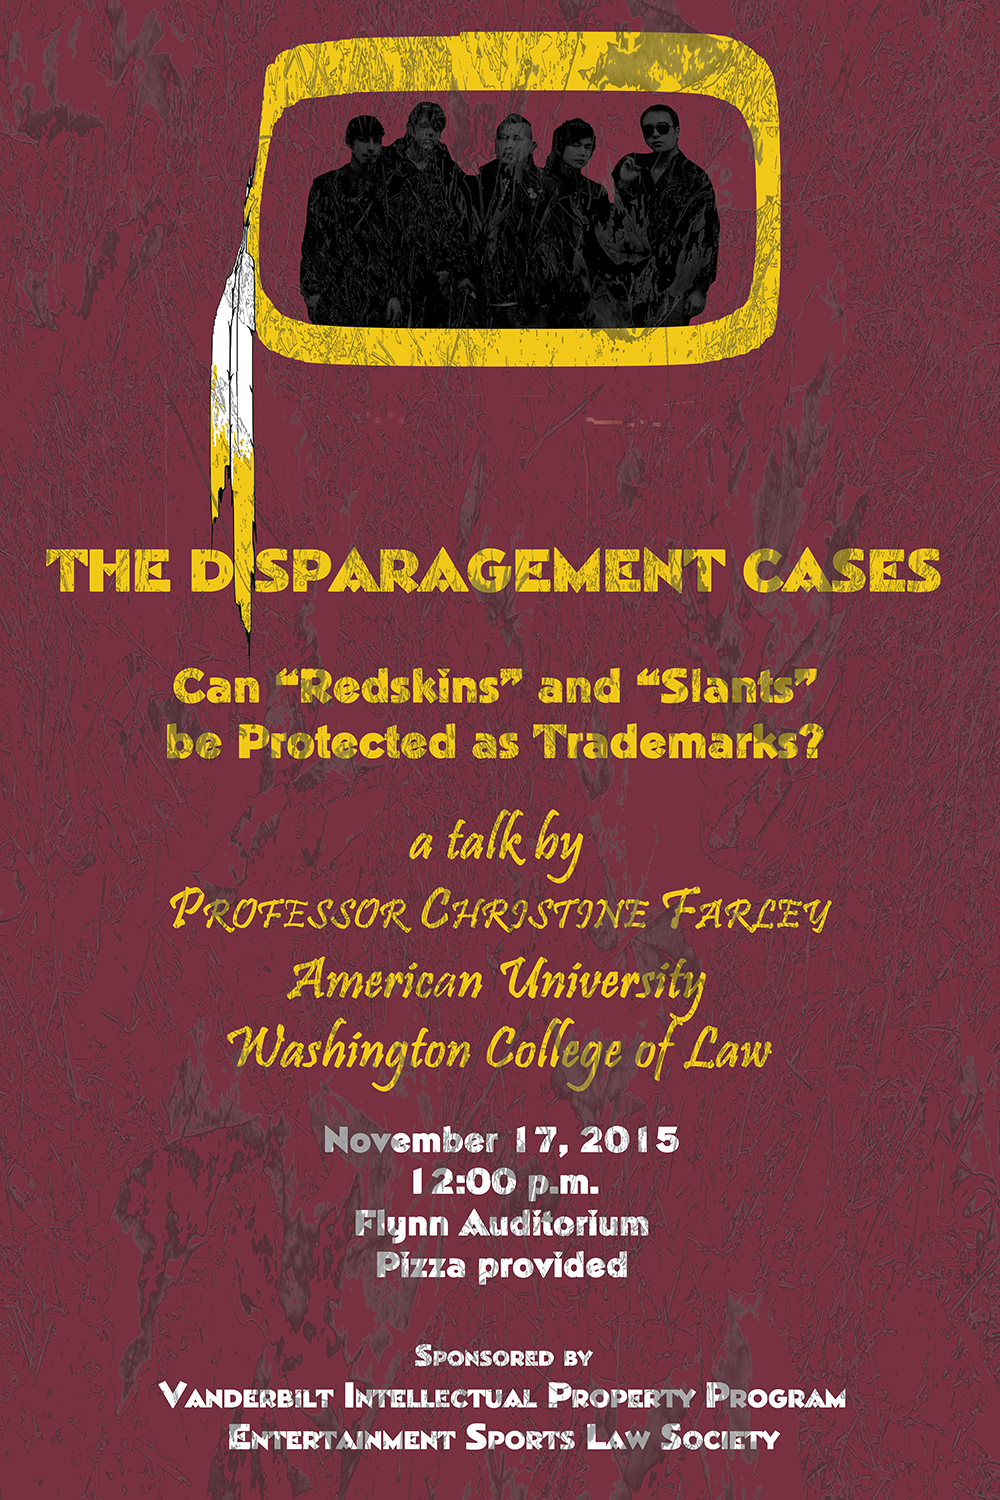 The Disparagement Cases: Can Redskins and Slants be protected as trademarks?